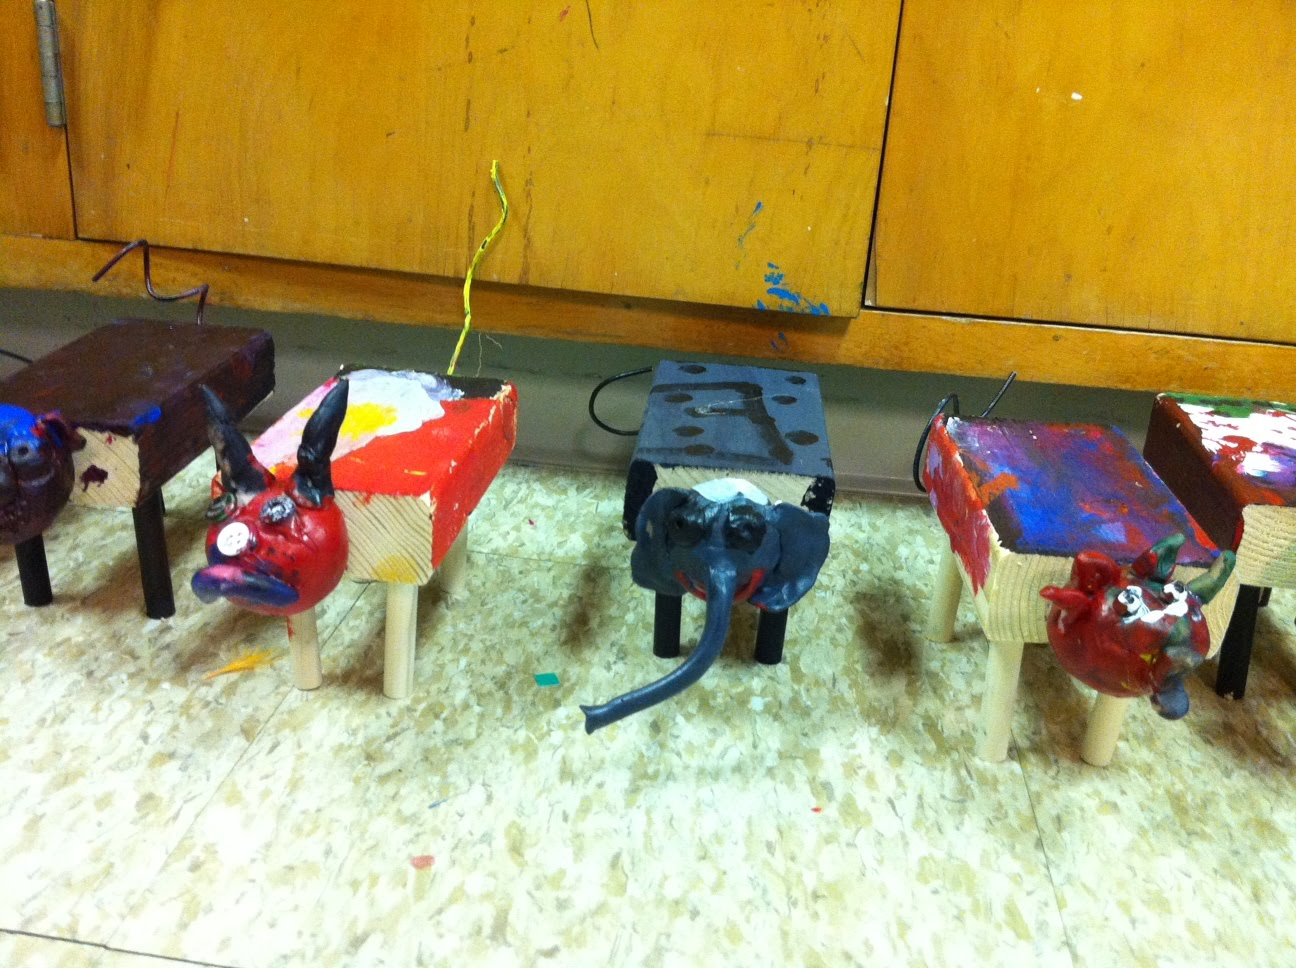 Crafts For Second Graders http://bradensartstars.blogspot.com/2011/02/blog-post_27.html